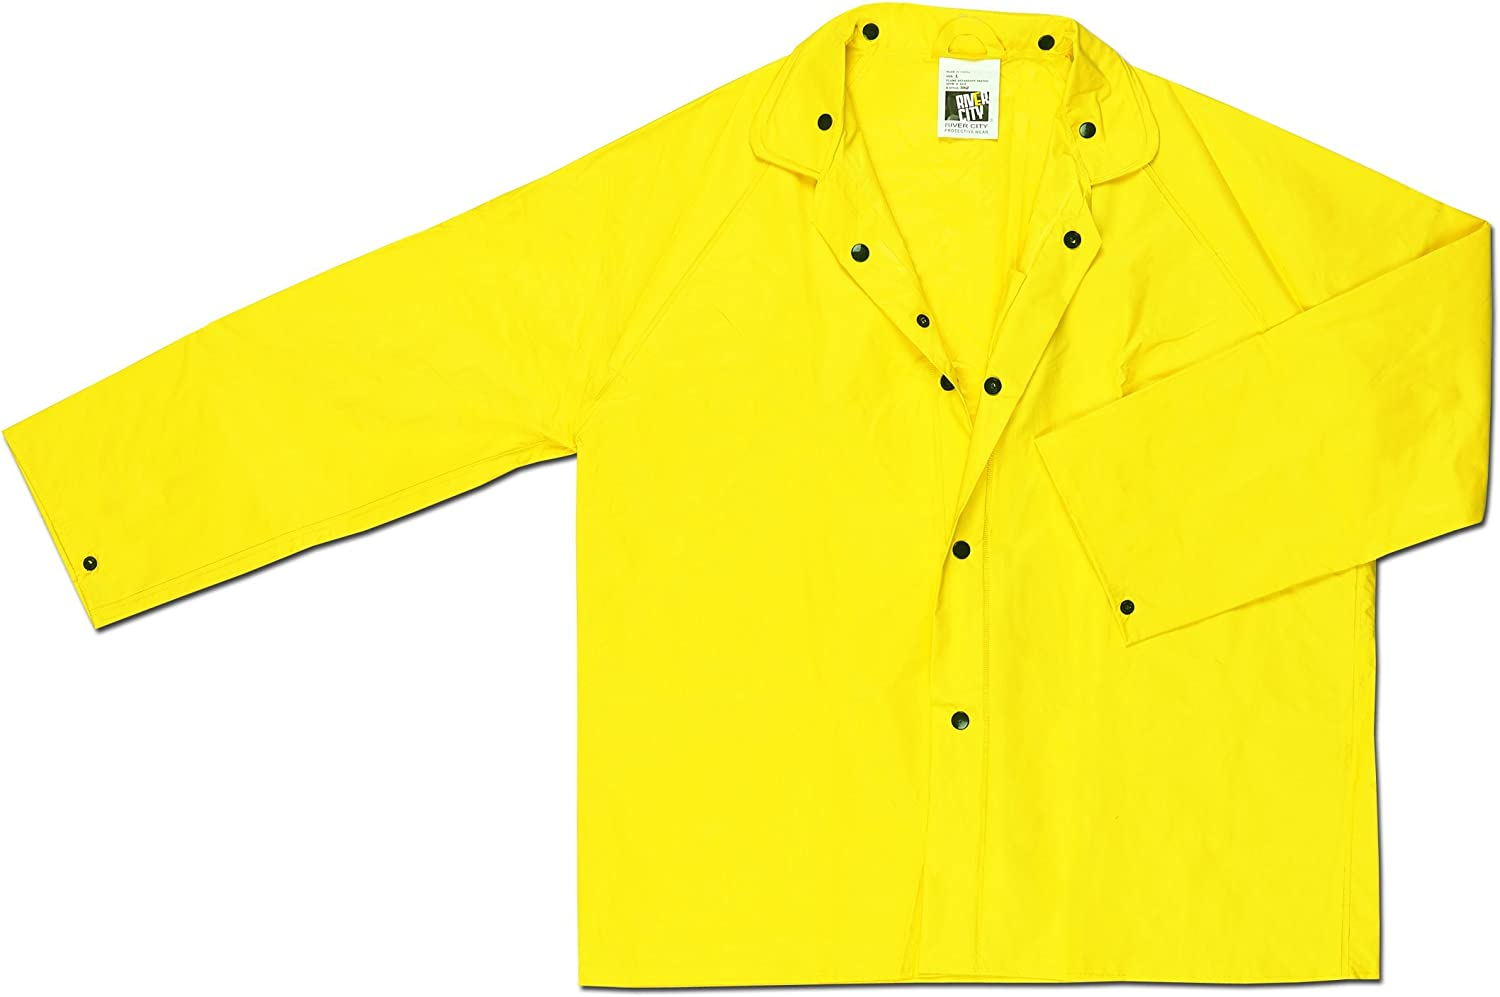 MCR Safety 300JX2 Wizard PVC/Nylon Flame Resistant Jacket with Detachable Hood, Yellow, 2X-Large